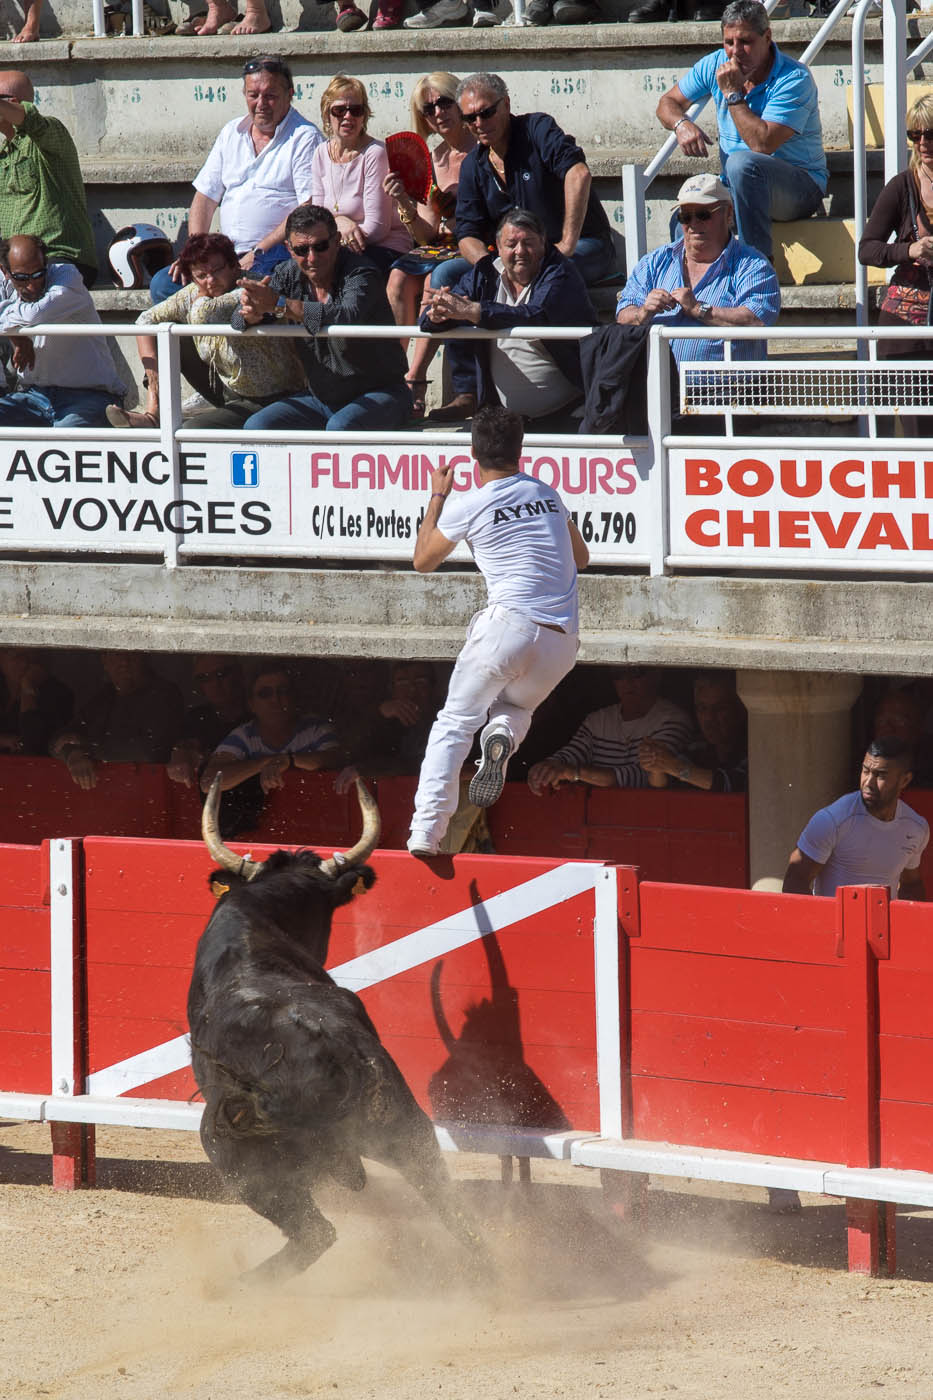 Raseteur Ayme jumps above the red fence, chased by a bull in Lunel bullring